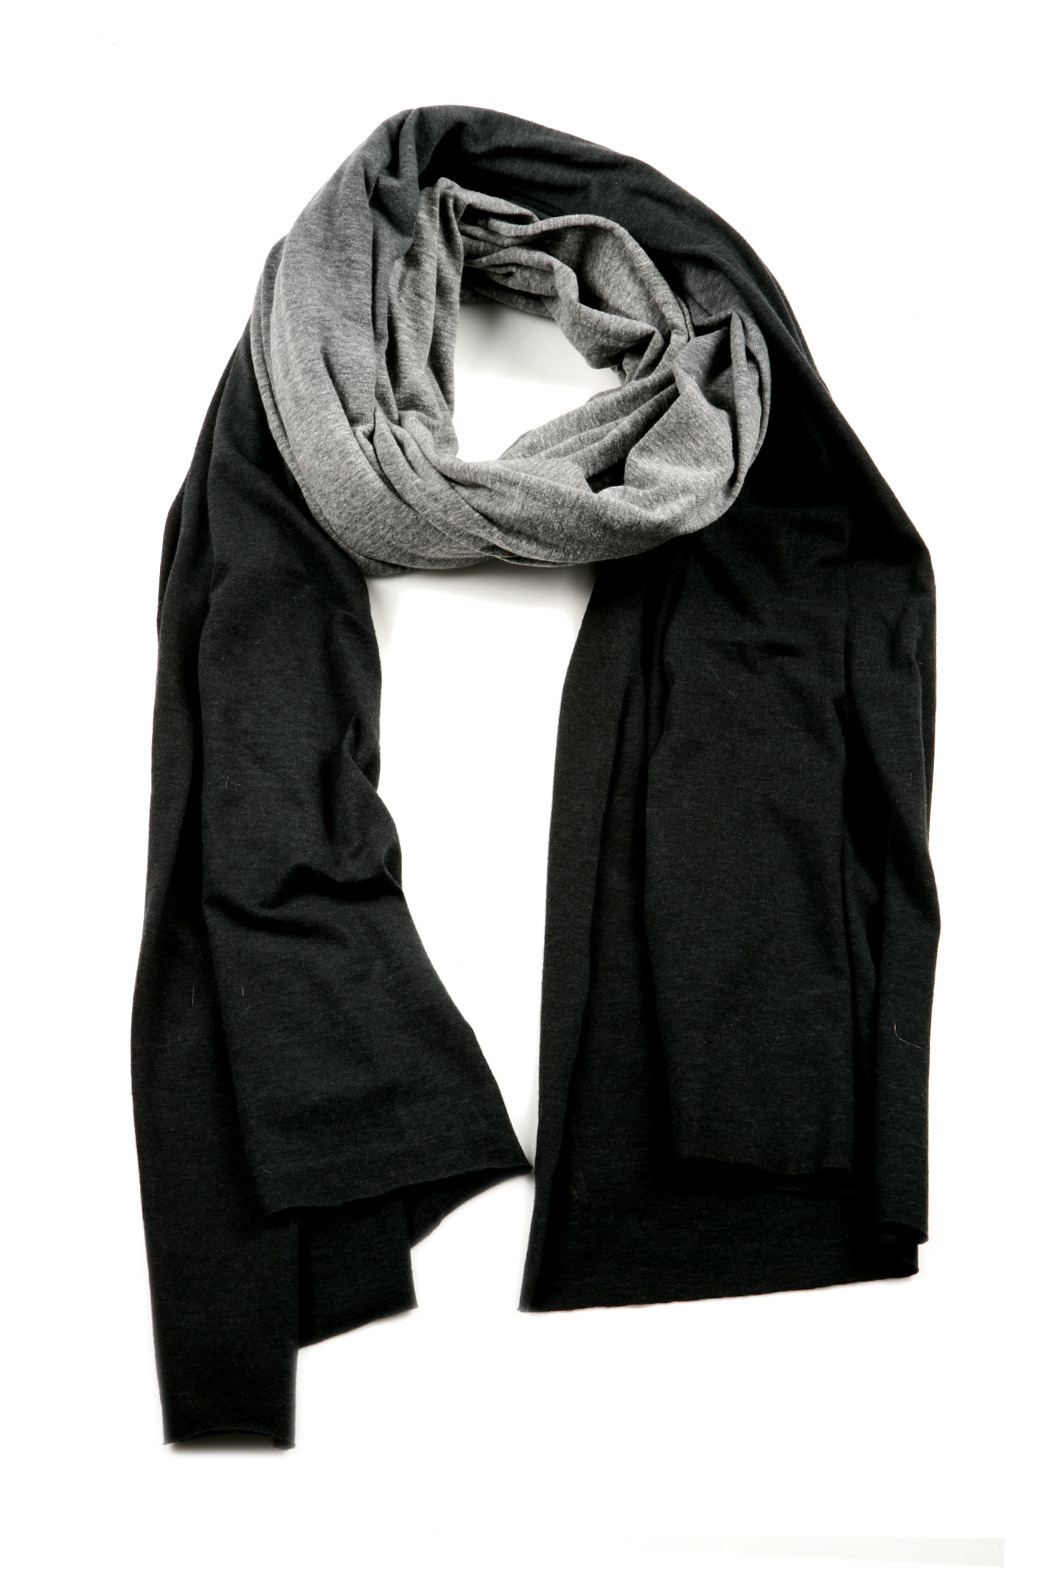 2019 year for girls- Nomad fluxus scarf how to wear